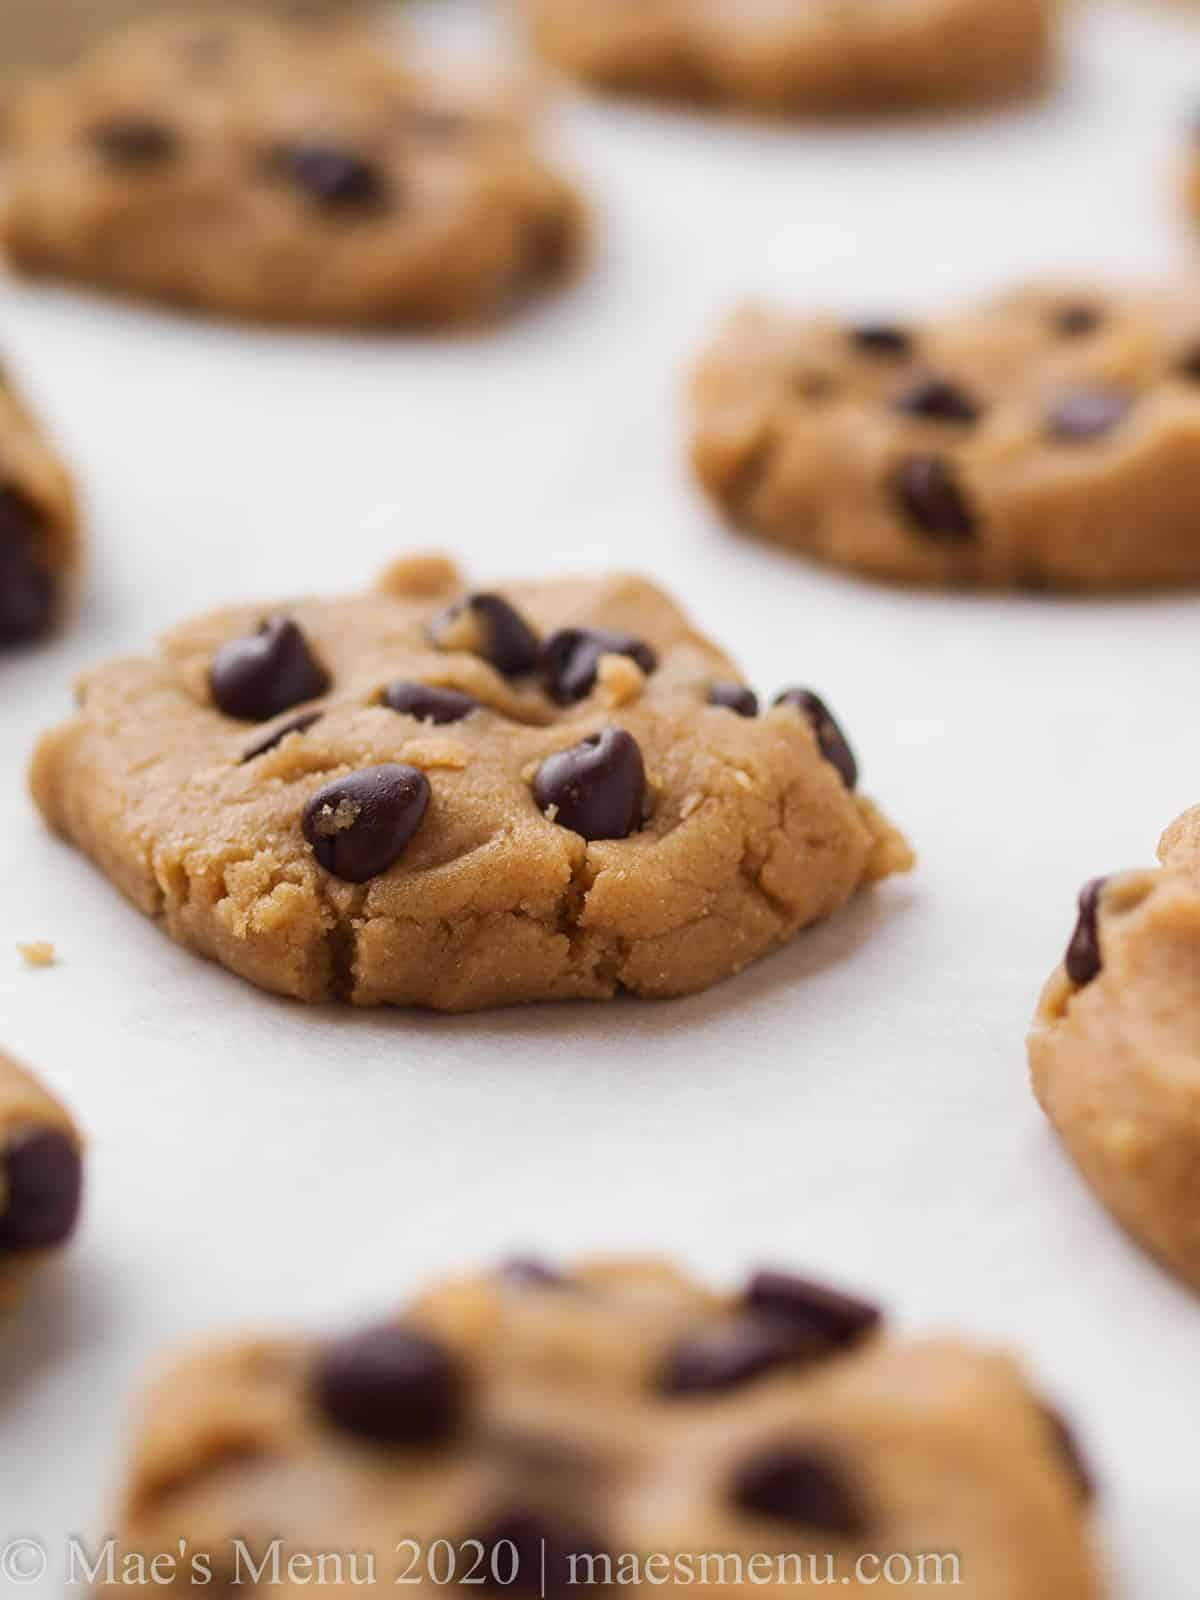 A sheet of high altitude chocolate chip cookies getting ready to go in the oven.